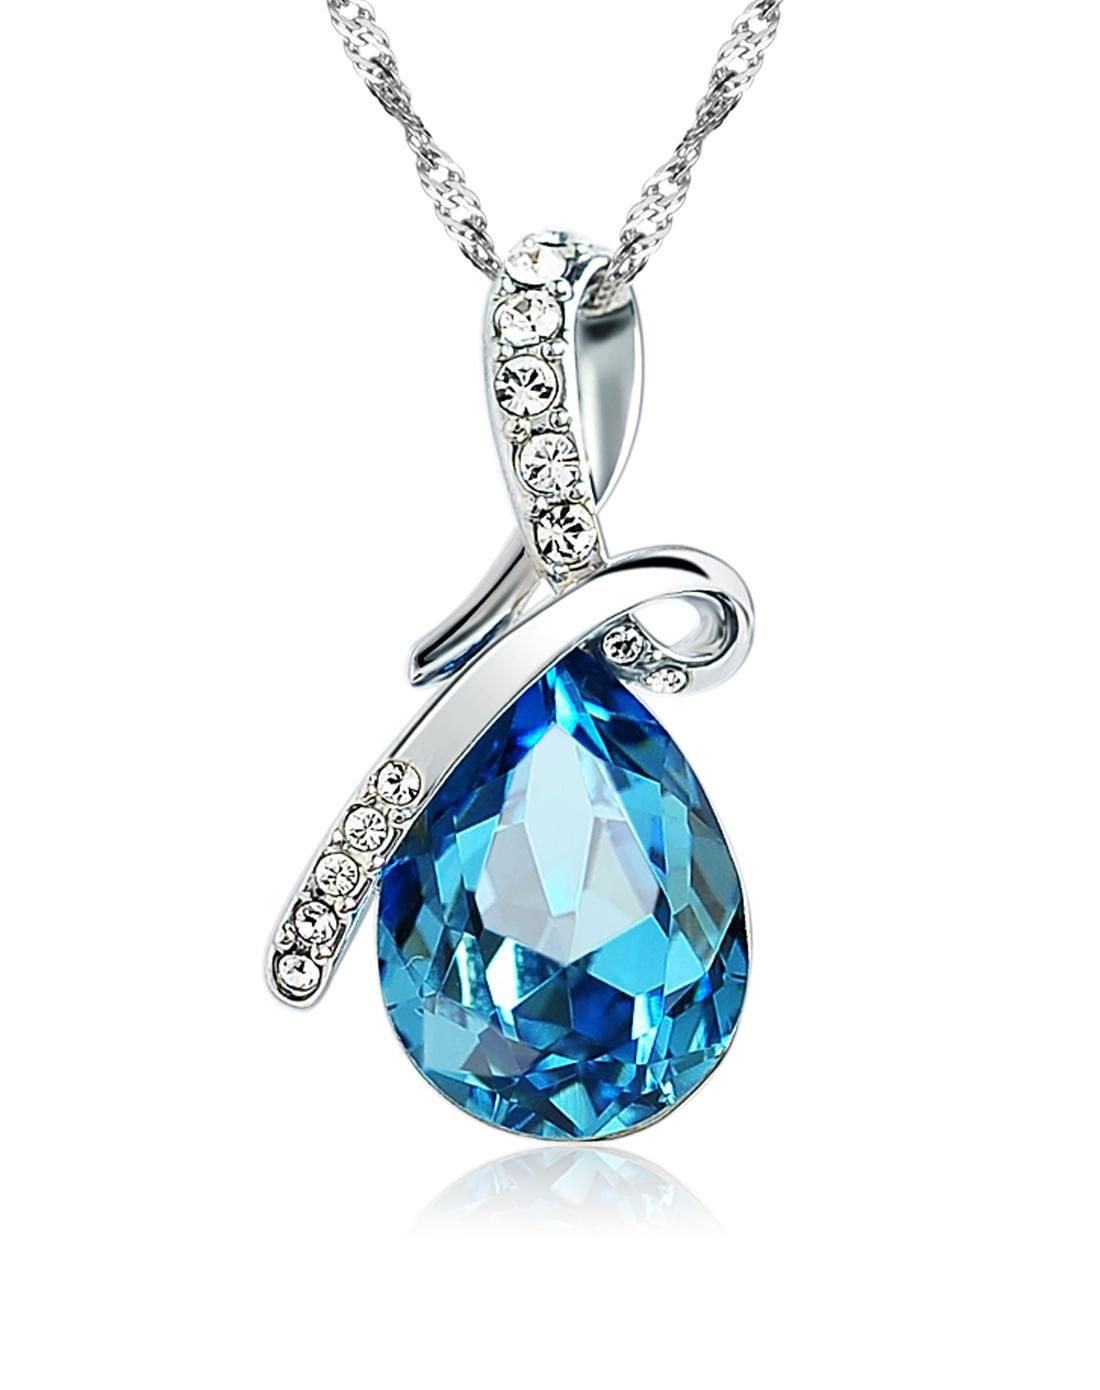 #AdoreWe #VIPme Necklaces - MINGLIN Silver Plated With Teardrop Blue Crystal Pendant - AdoreWe.com